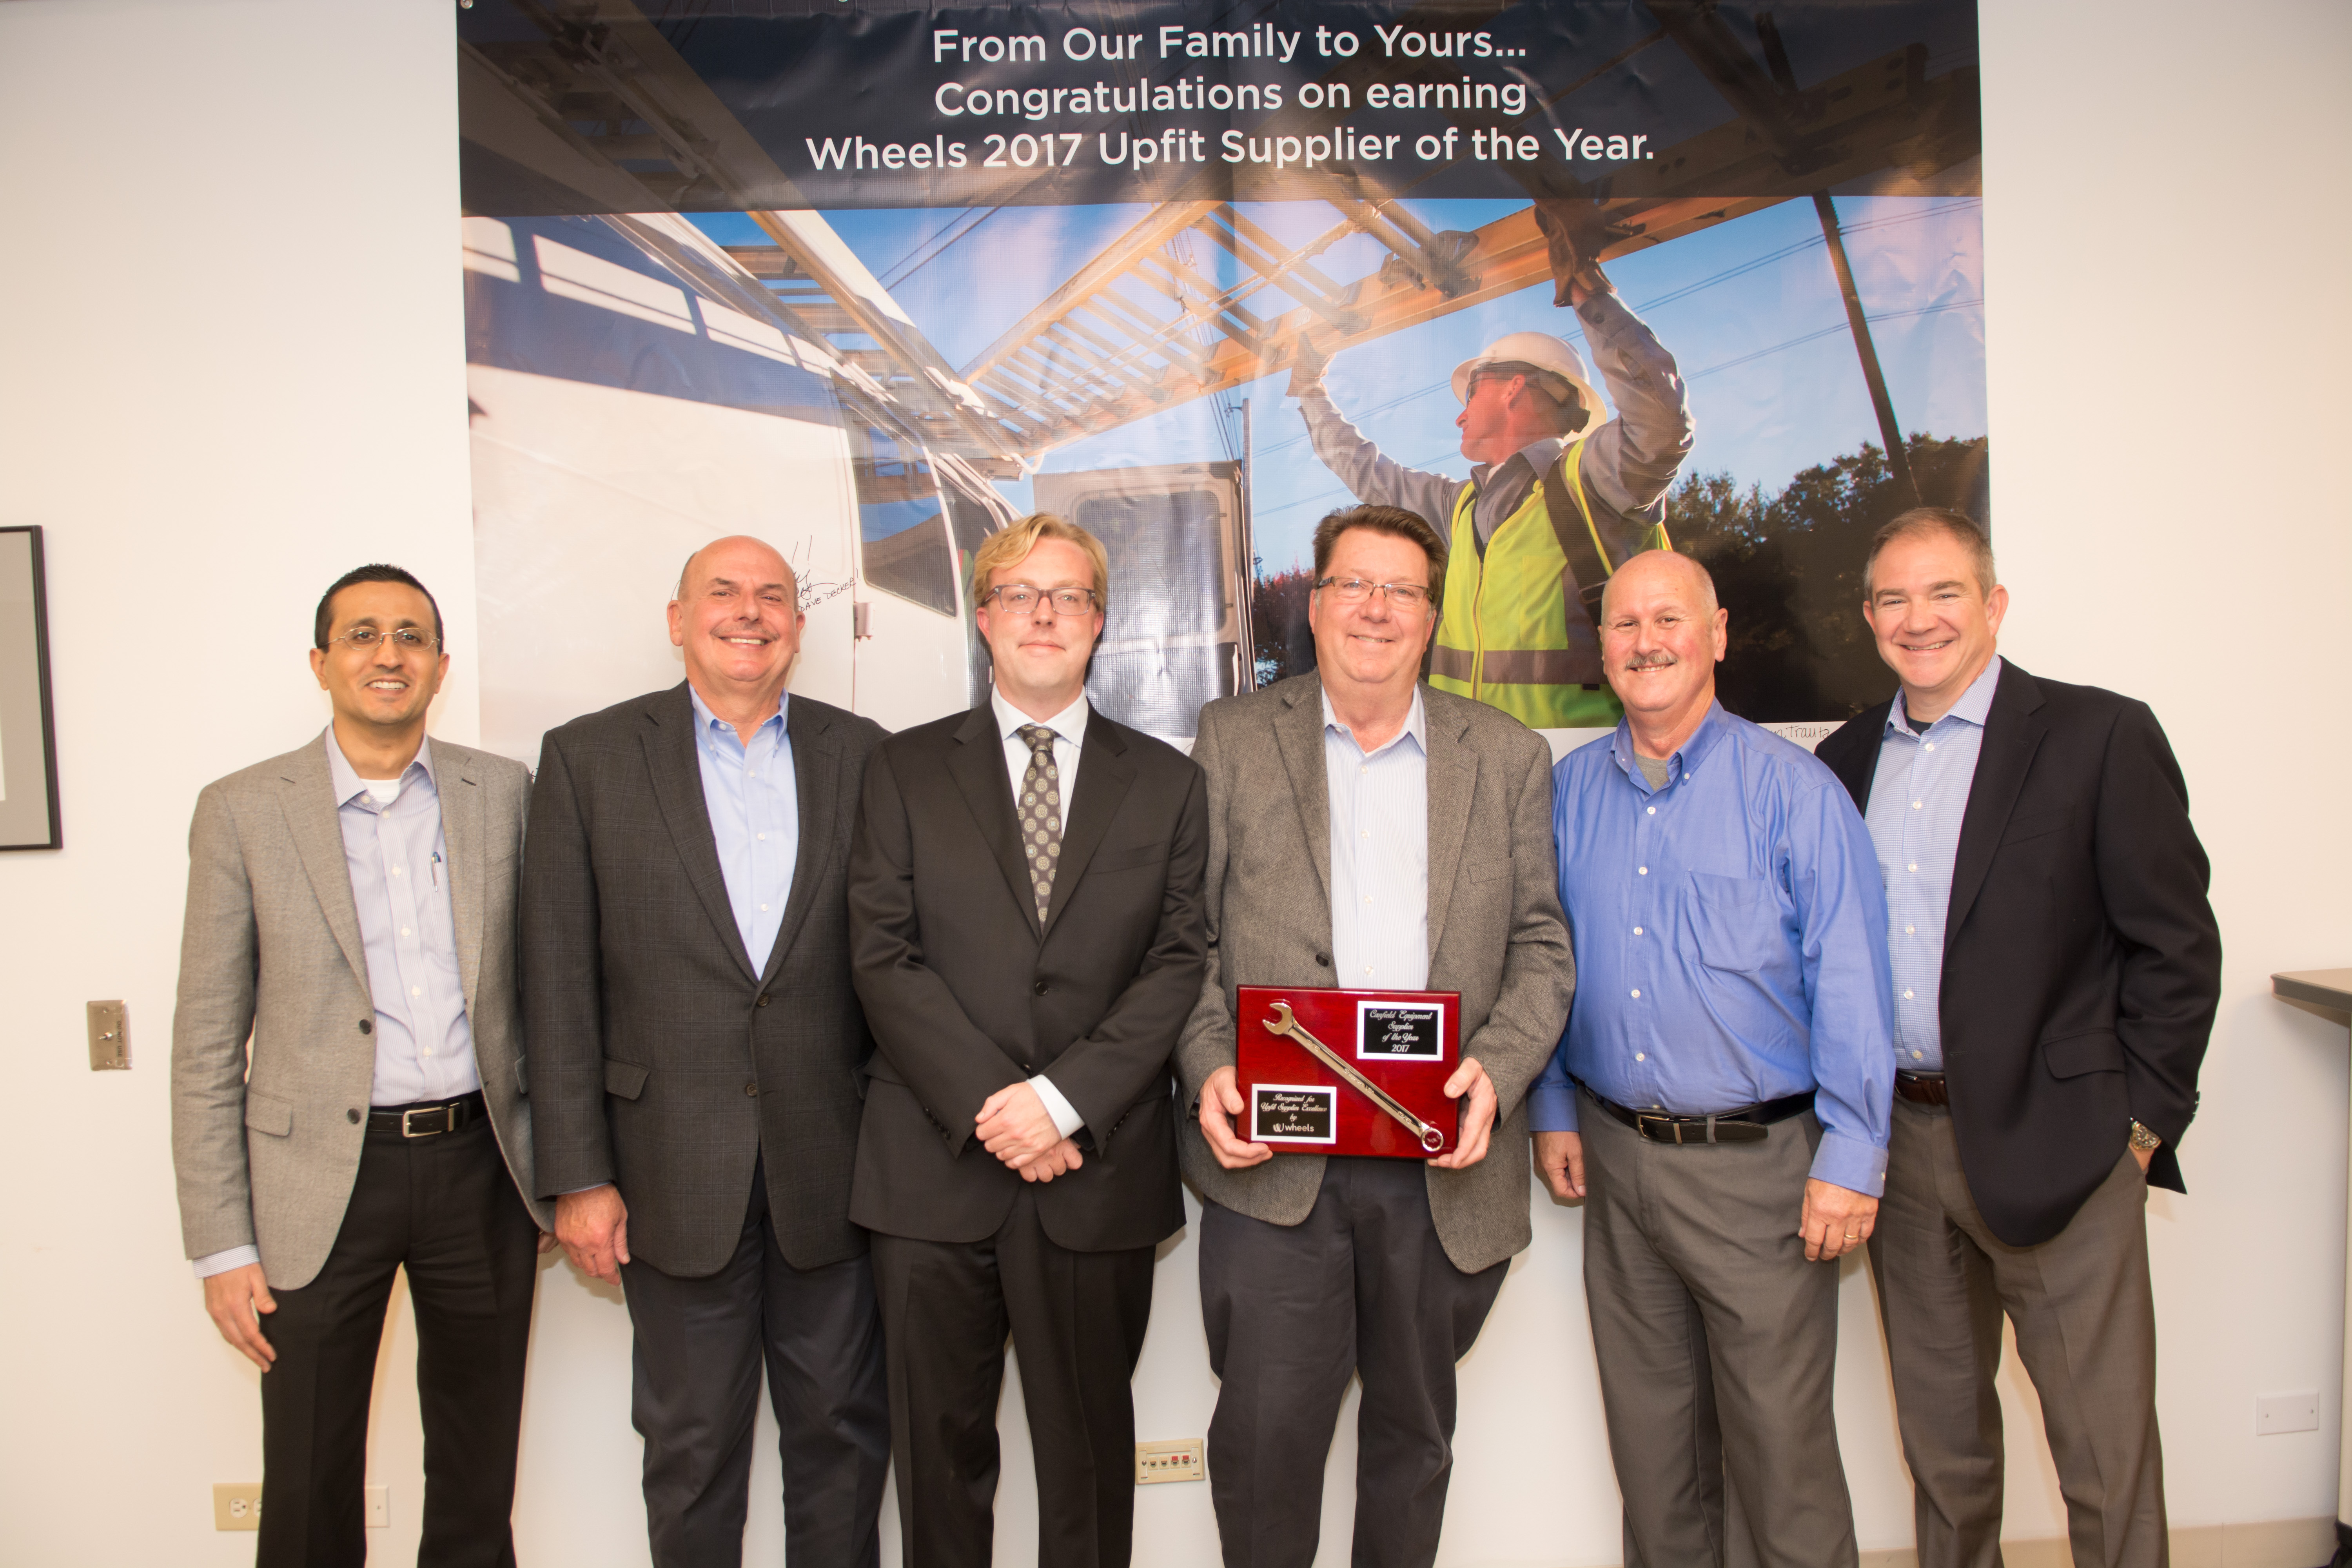 Wheels Recognizes Upfit Supplier of the Year